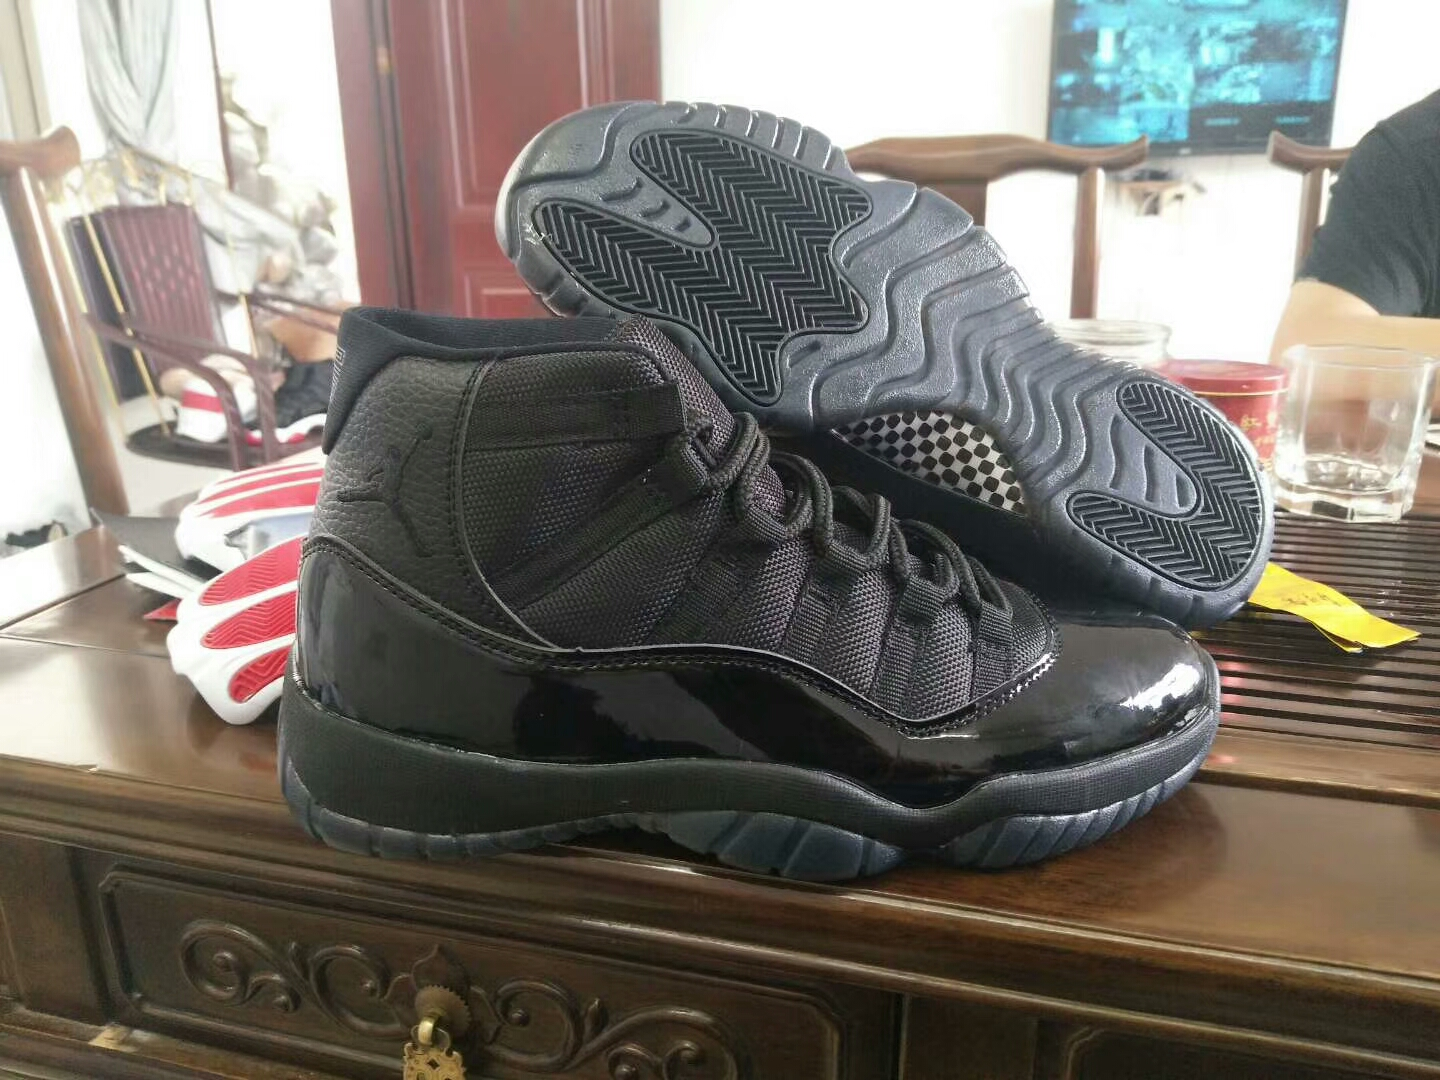 New Air Jordan 11 Retro All Black Shoes